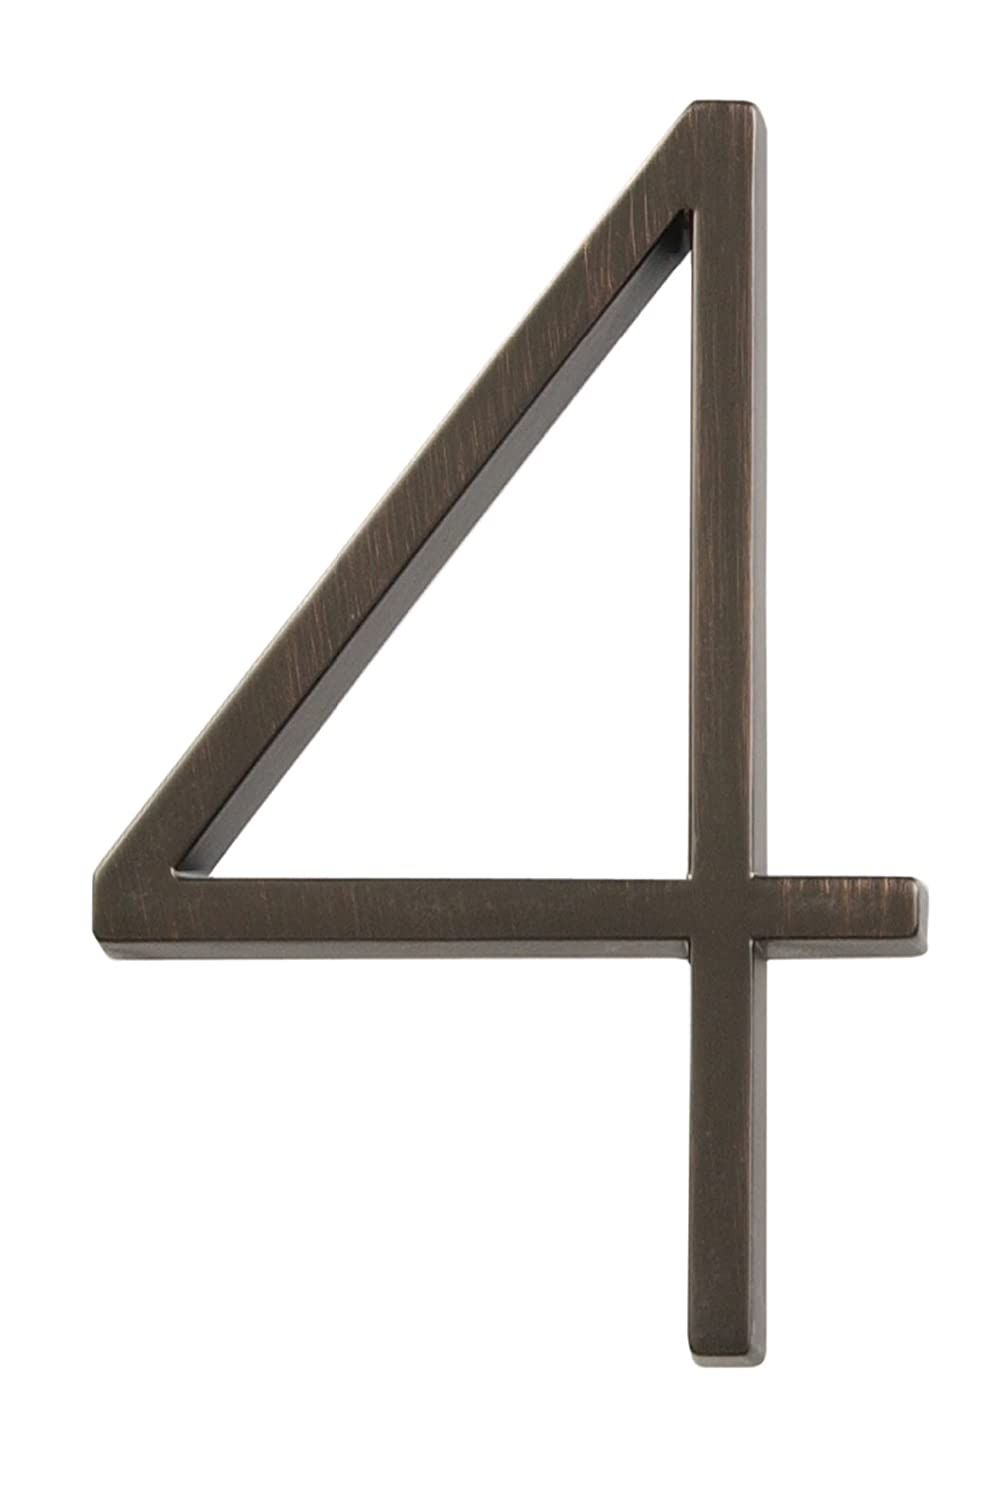 Number 6 Distinctions by Hillman 843196 5-Inch Floating Mount House Black